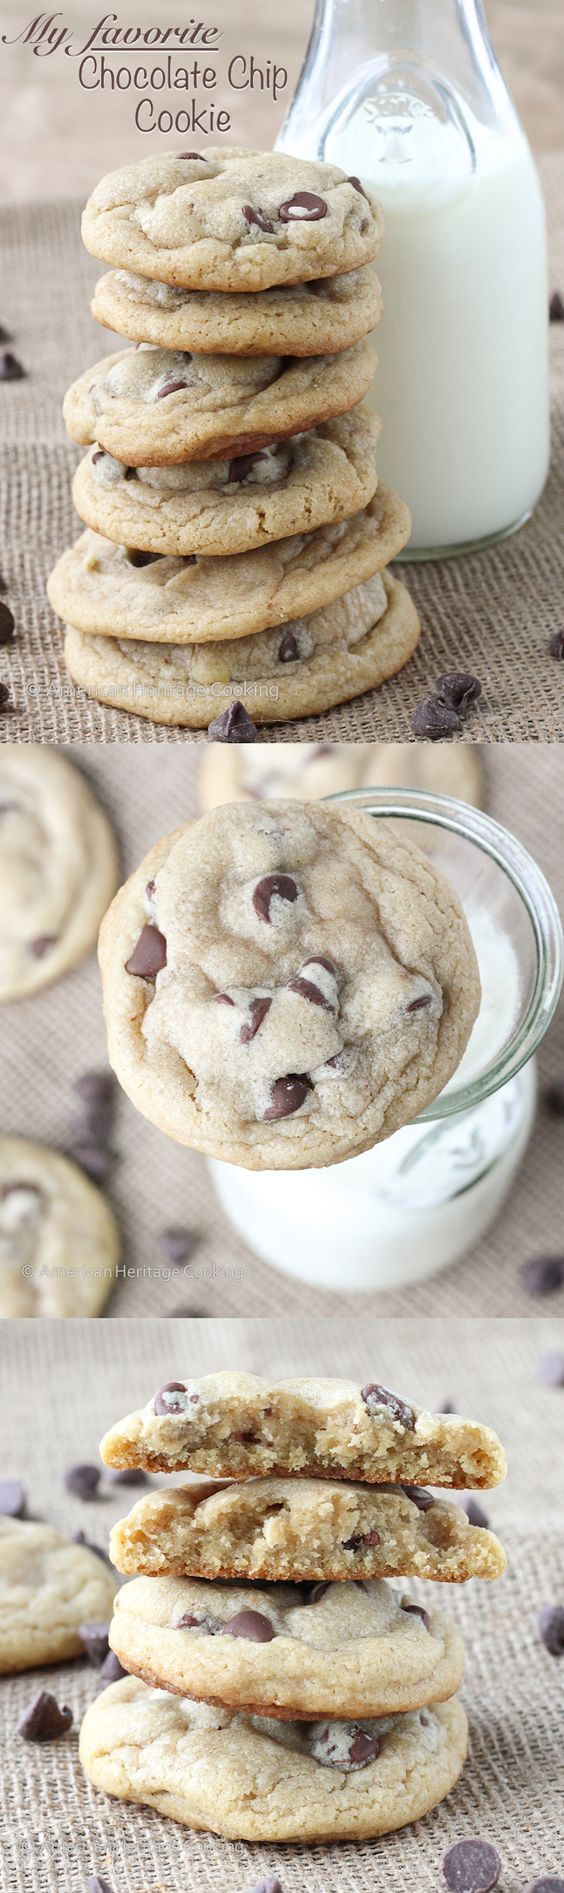 Jacques Torres S Secret Chocolate Chip Cookies Recipe Recipe Cookie Recipes And Chocolate Chips